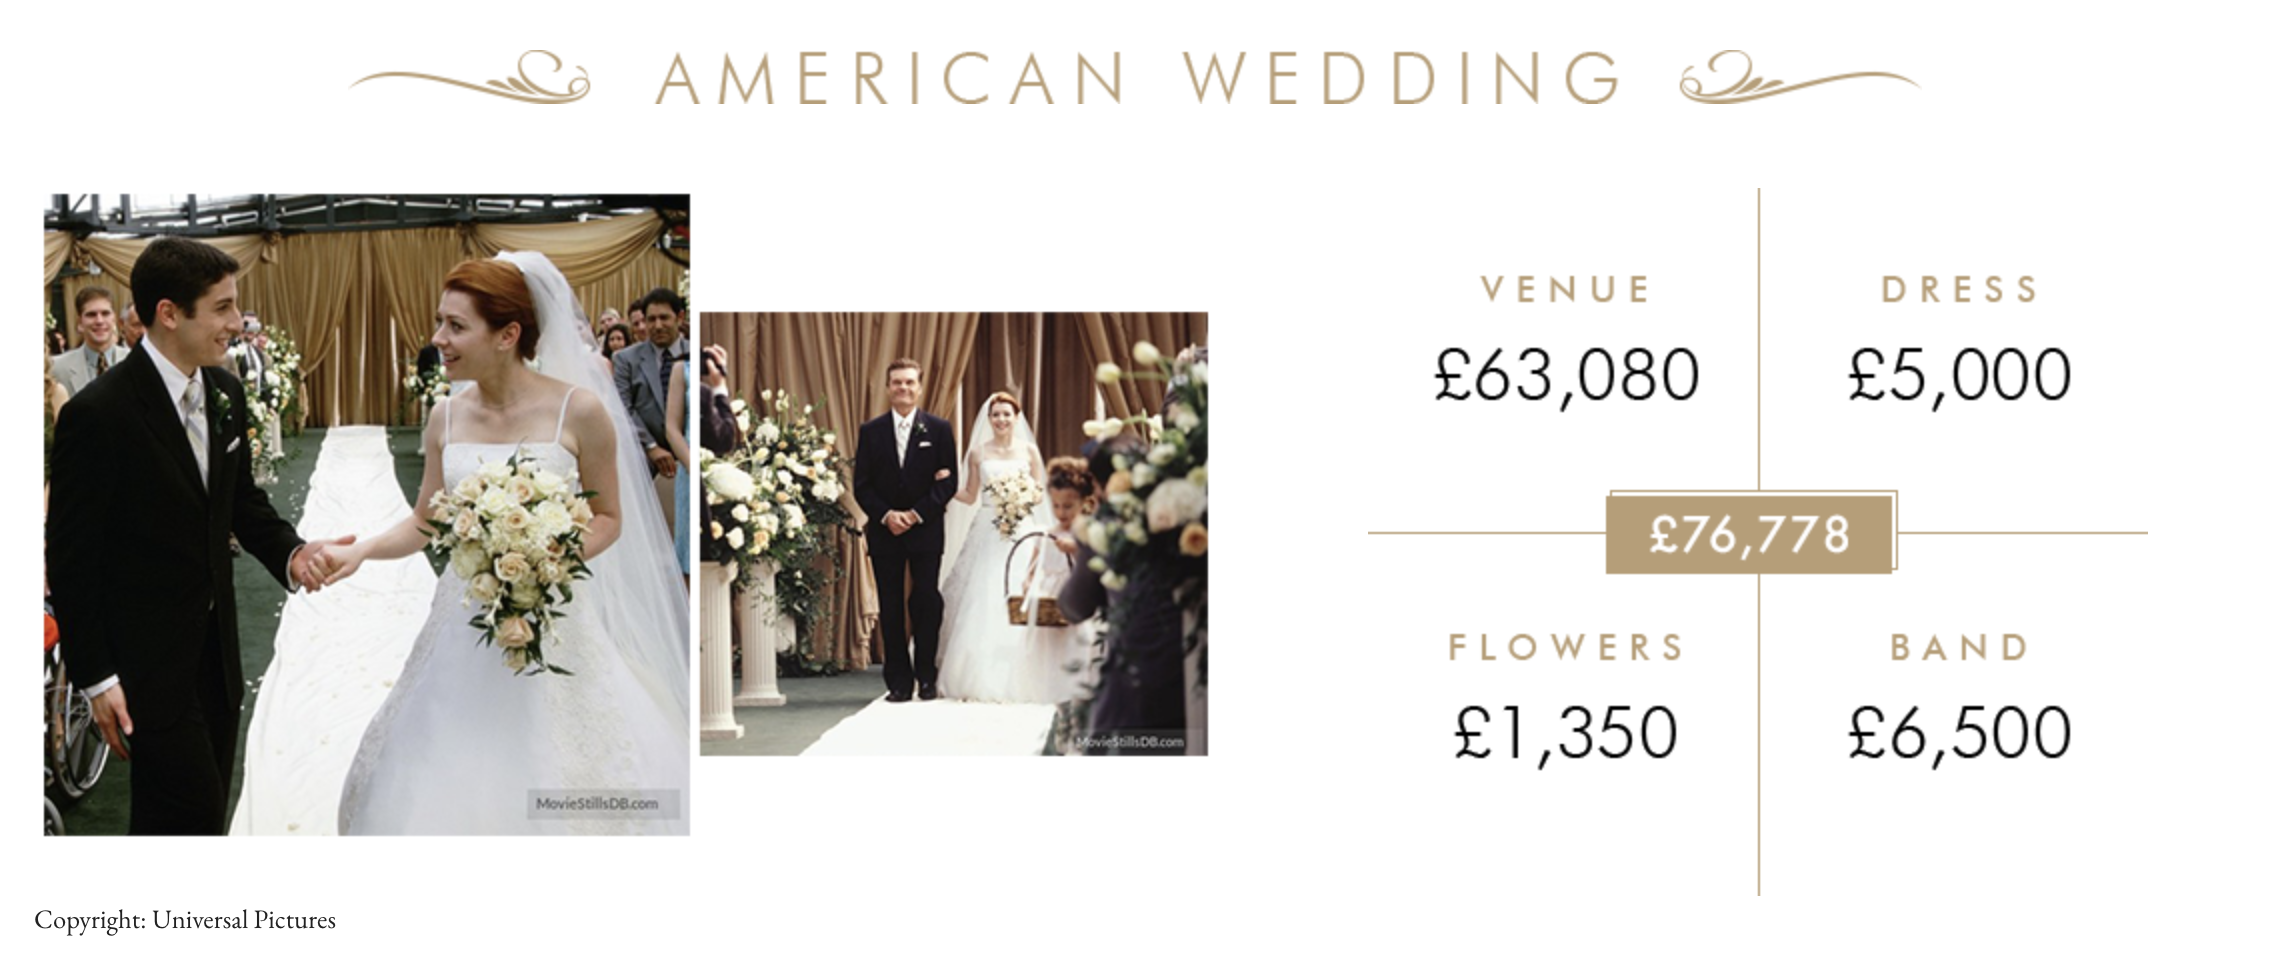 american wedding movie wedding ceremony cost in real life